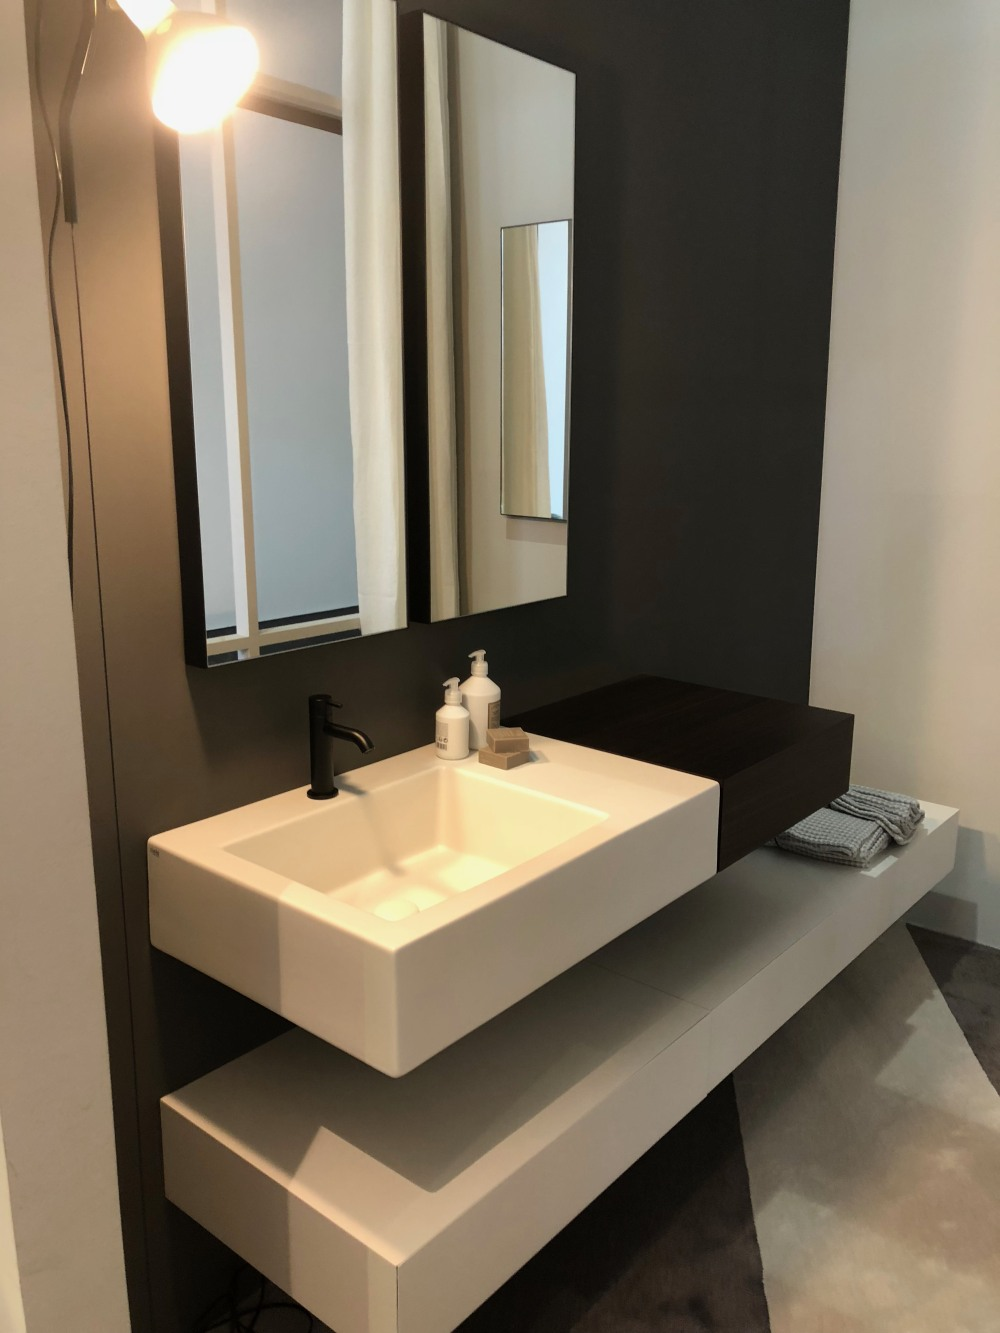 Although very simple, the design of this bathroom vanity very effectively conceals the plumbing and offers generous storage